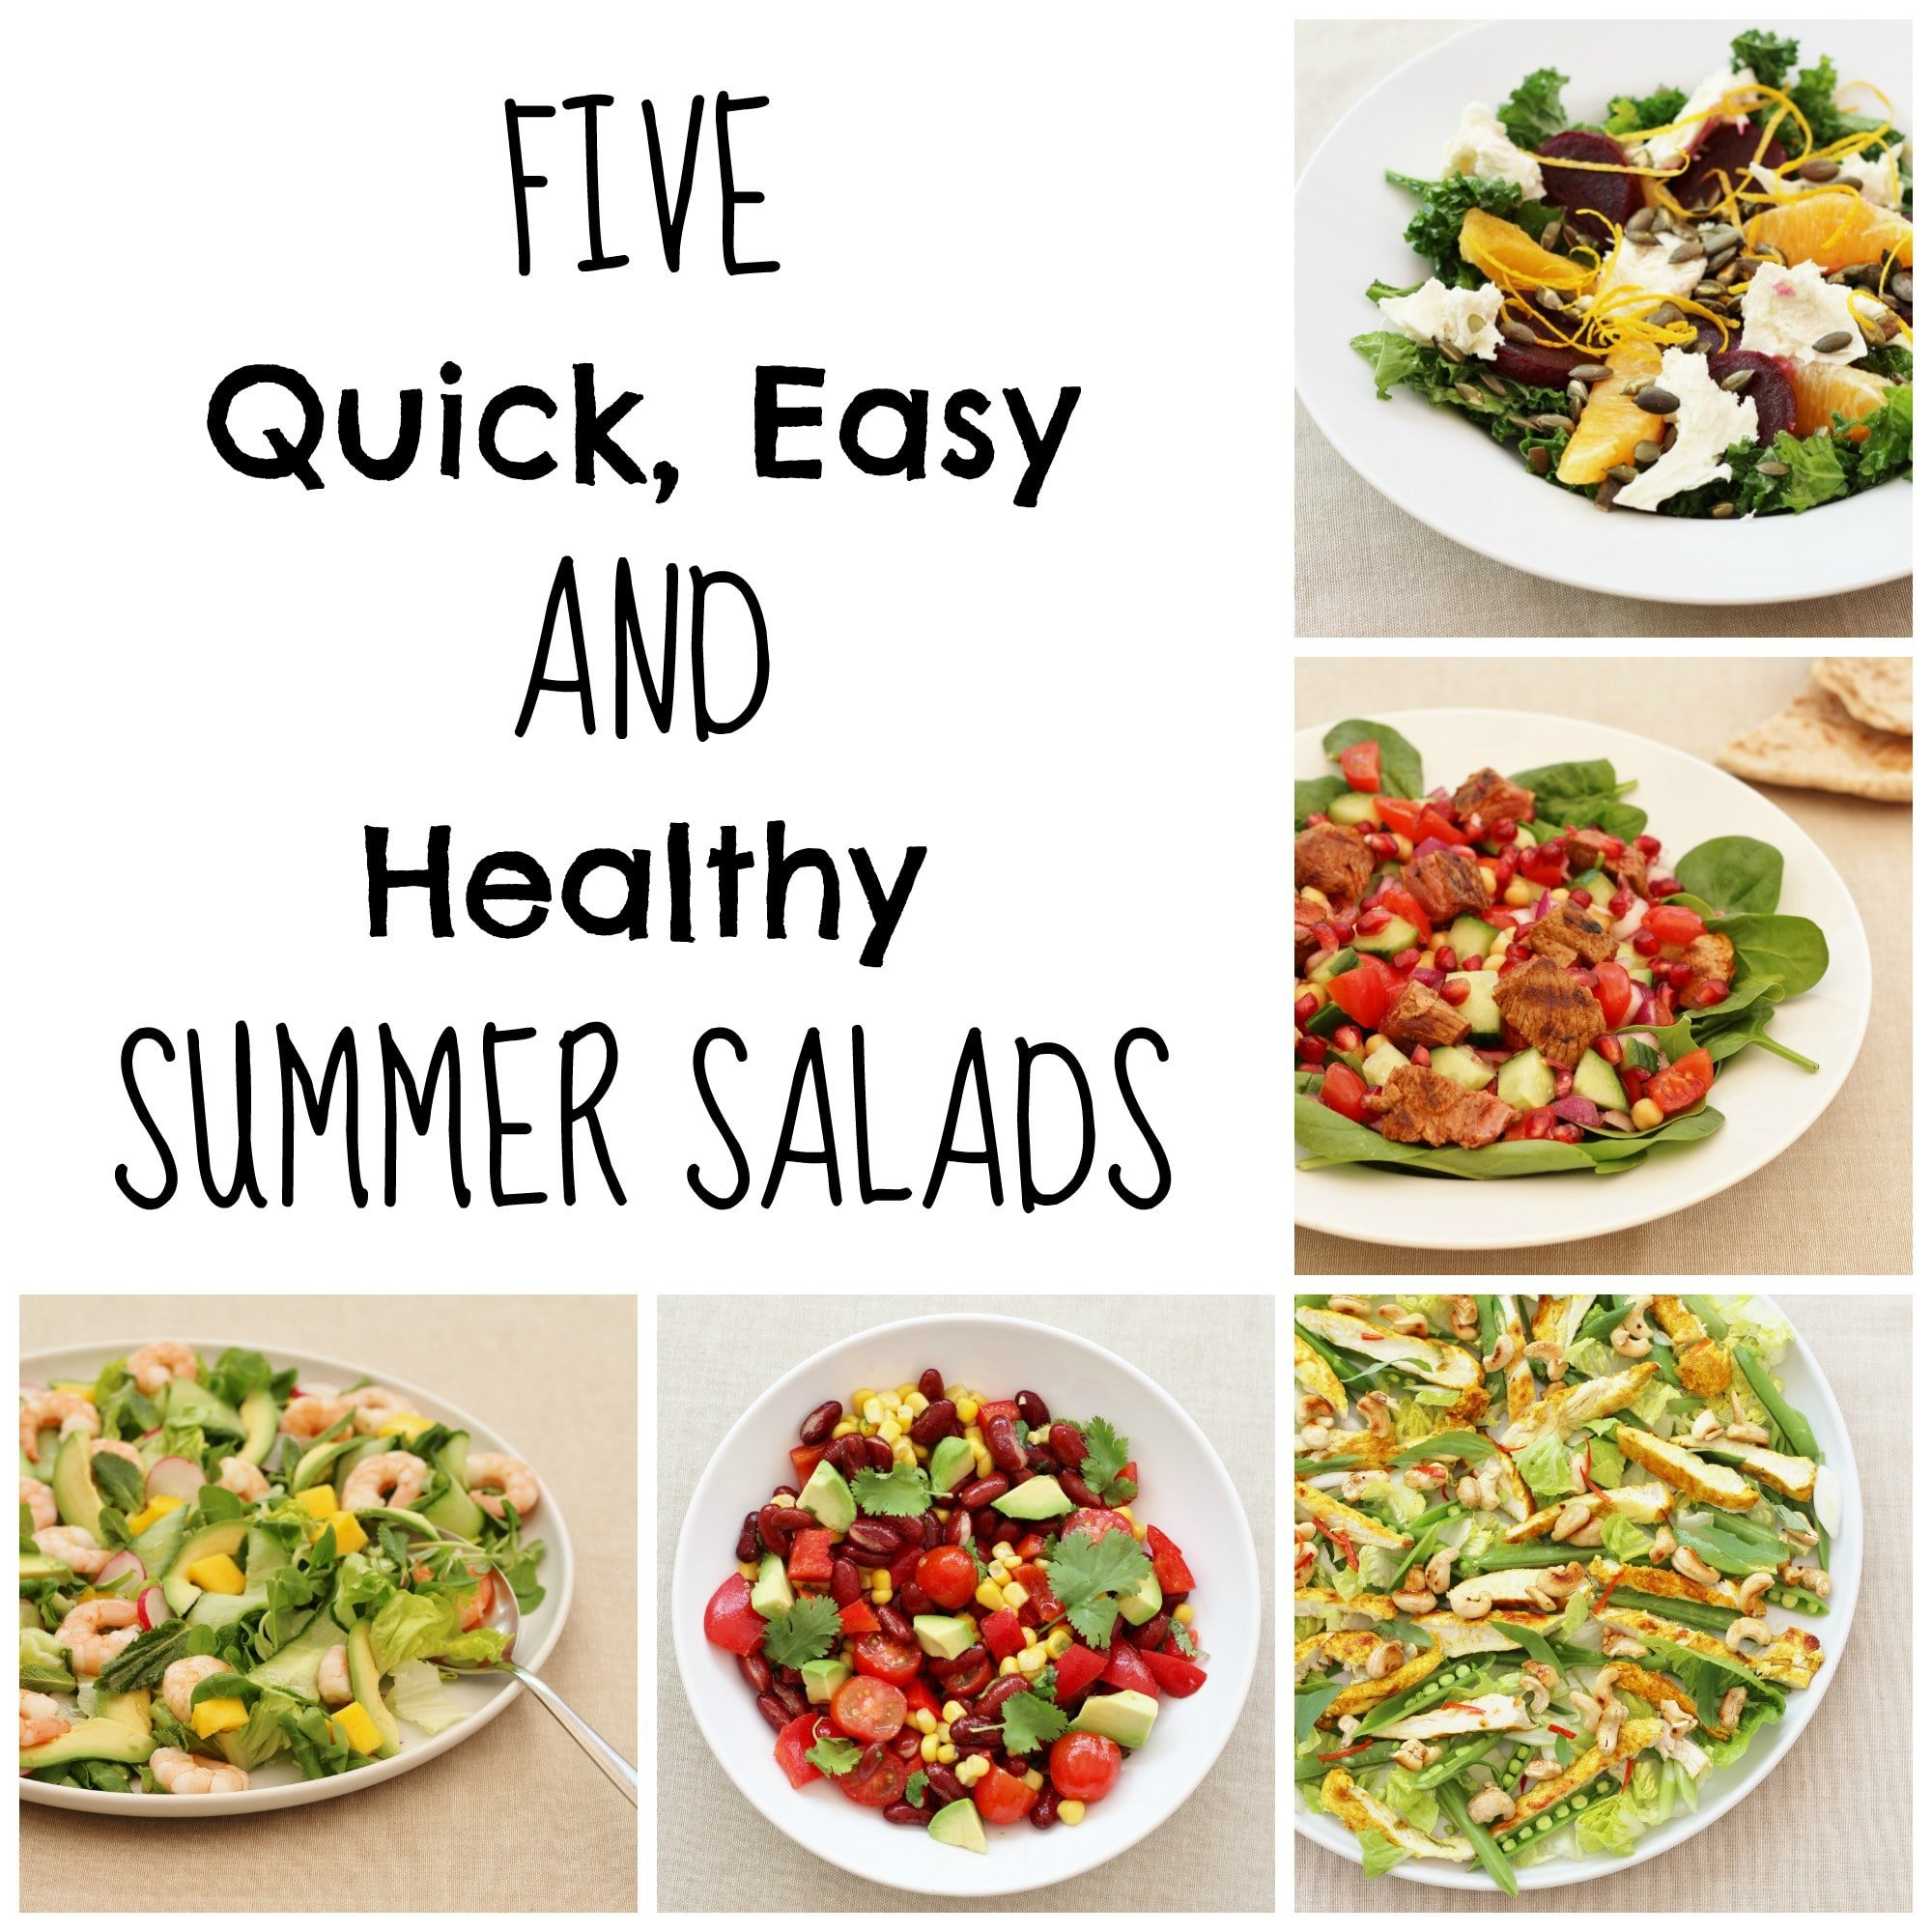 Simple And Nutritious: 5 Quick, Easy AND Healthy Summer Salads